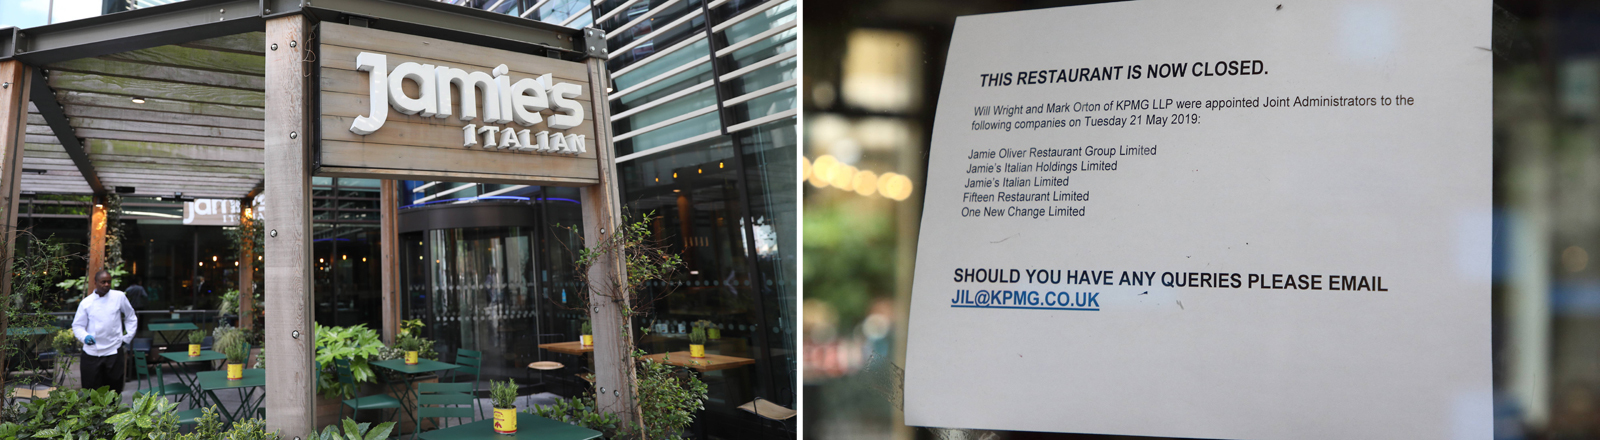 A general view of Jamie's Italian London Bridge restaurant / Sign outside Jamies Italian in Covent Garden as Celebrity chef Jamie Oliver s restaurant group has gone into administration, with 1000 jobs being lost.